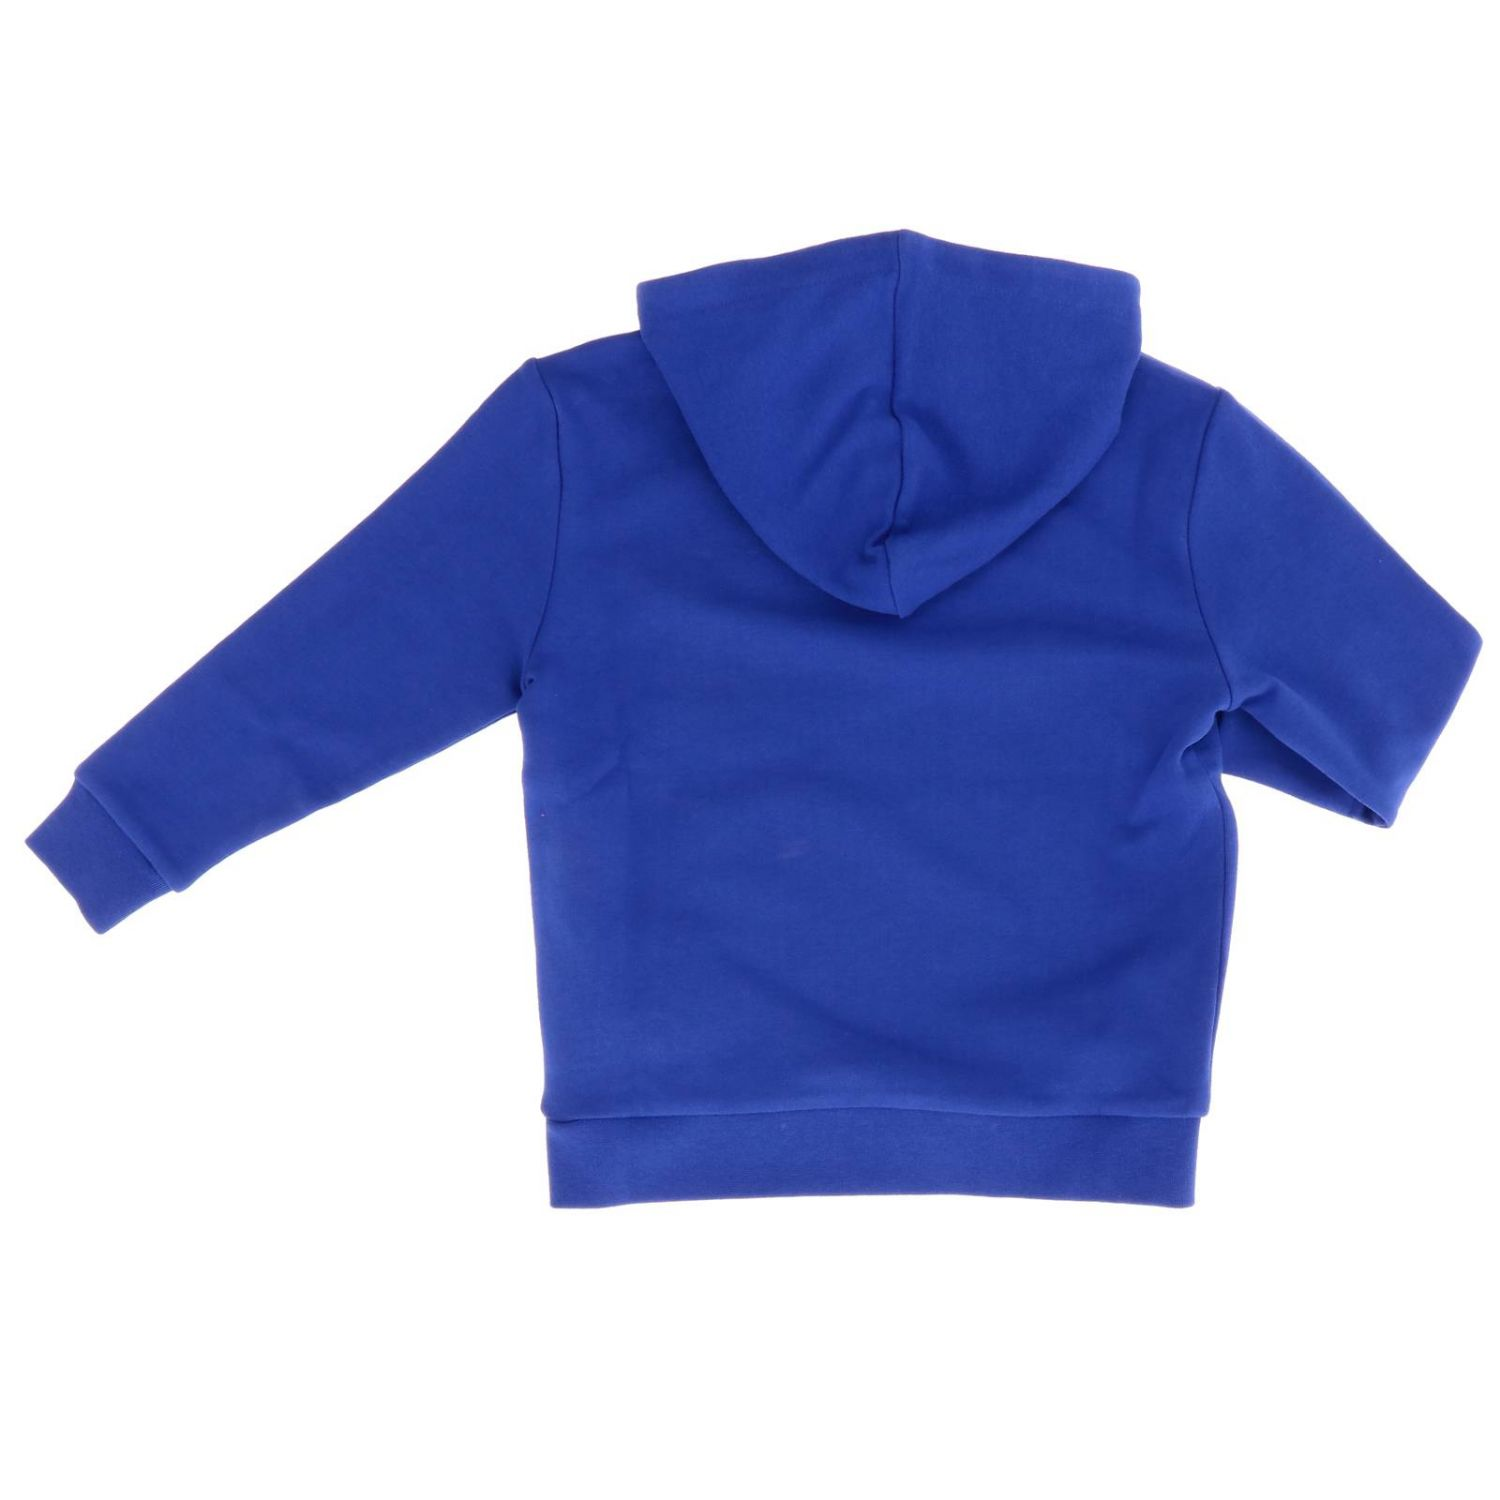 Fay sweatshirt with hood and logo blue 2